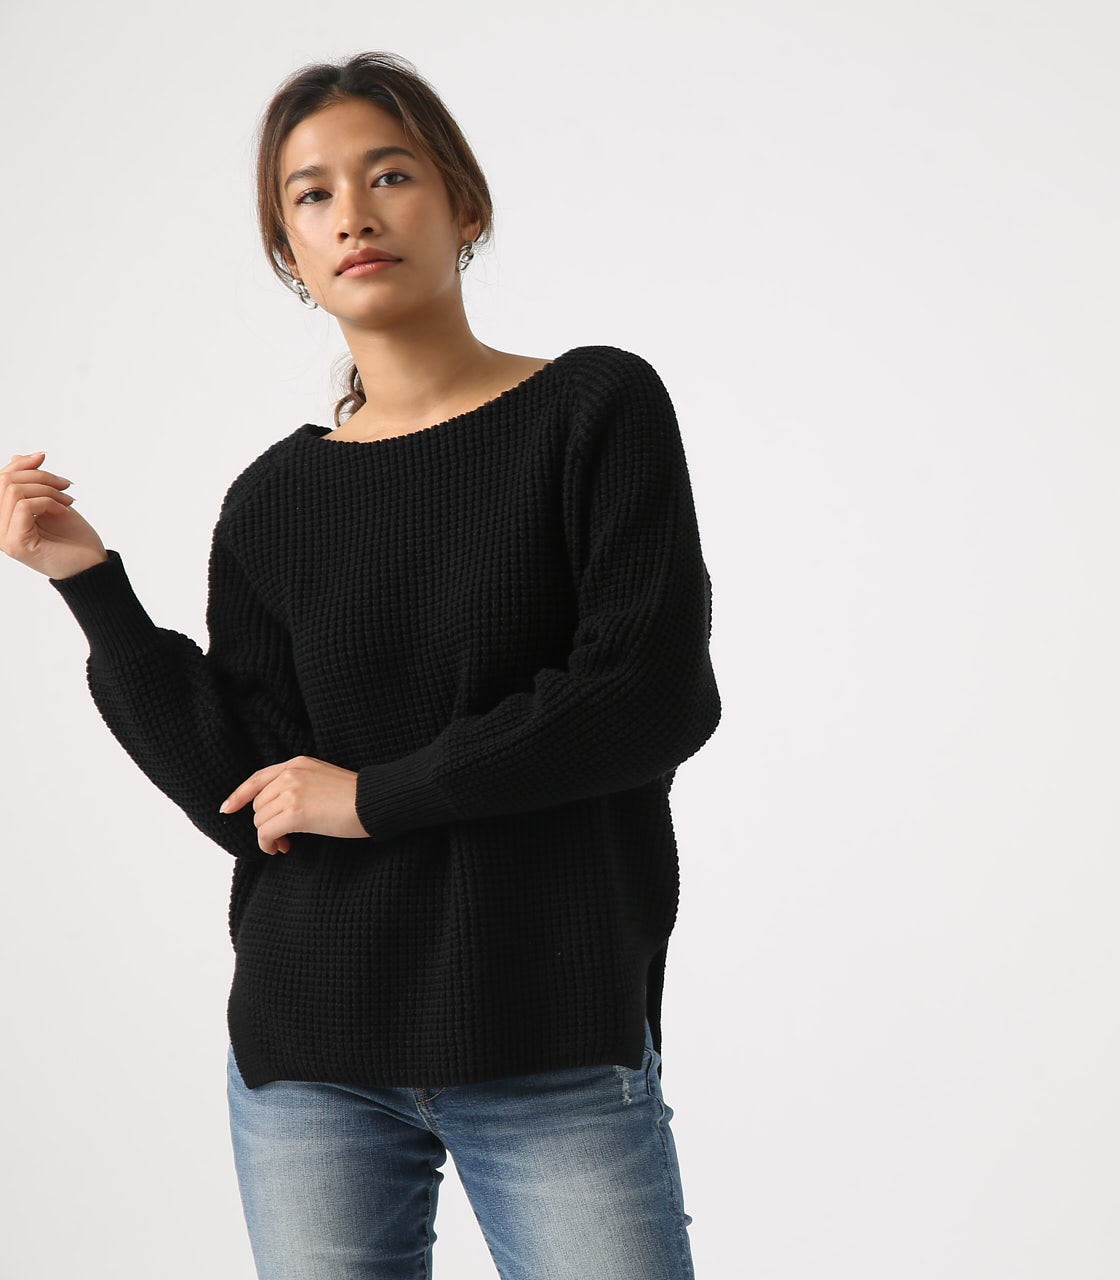 【AZUL BY MOUSSY】WAFFLE KNIT TUNIC 詳細画像 BLK 3